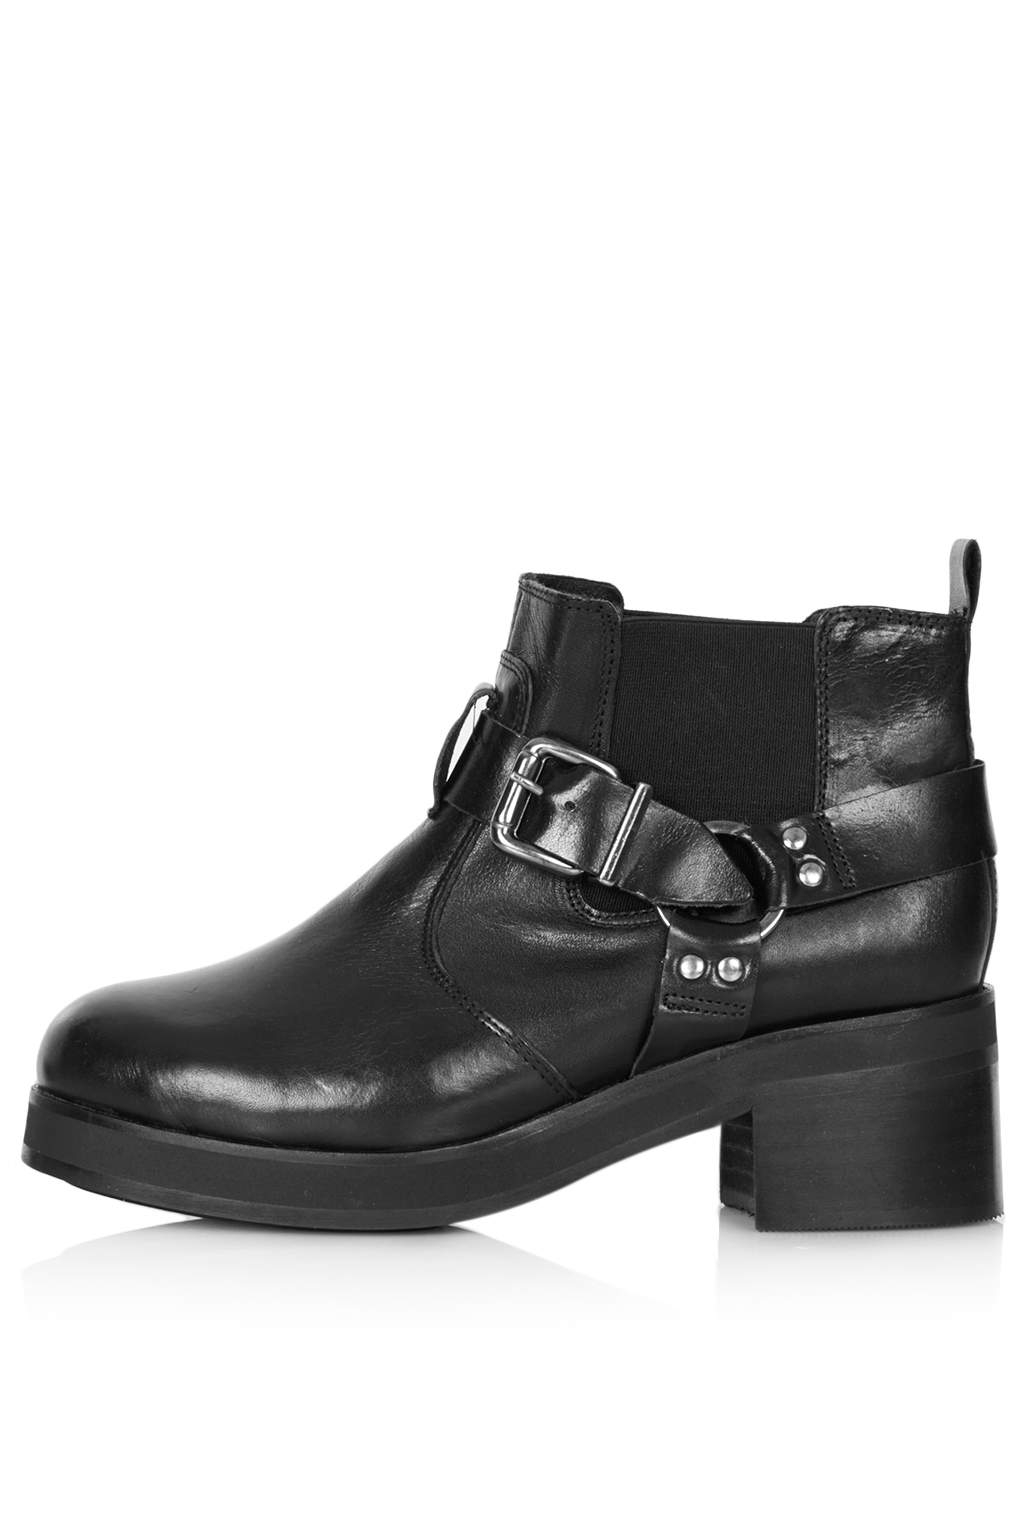 TOPSHOP Apricot Harness Boot in Black